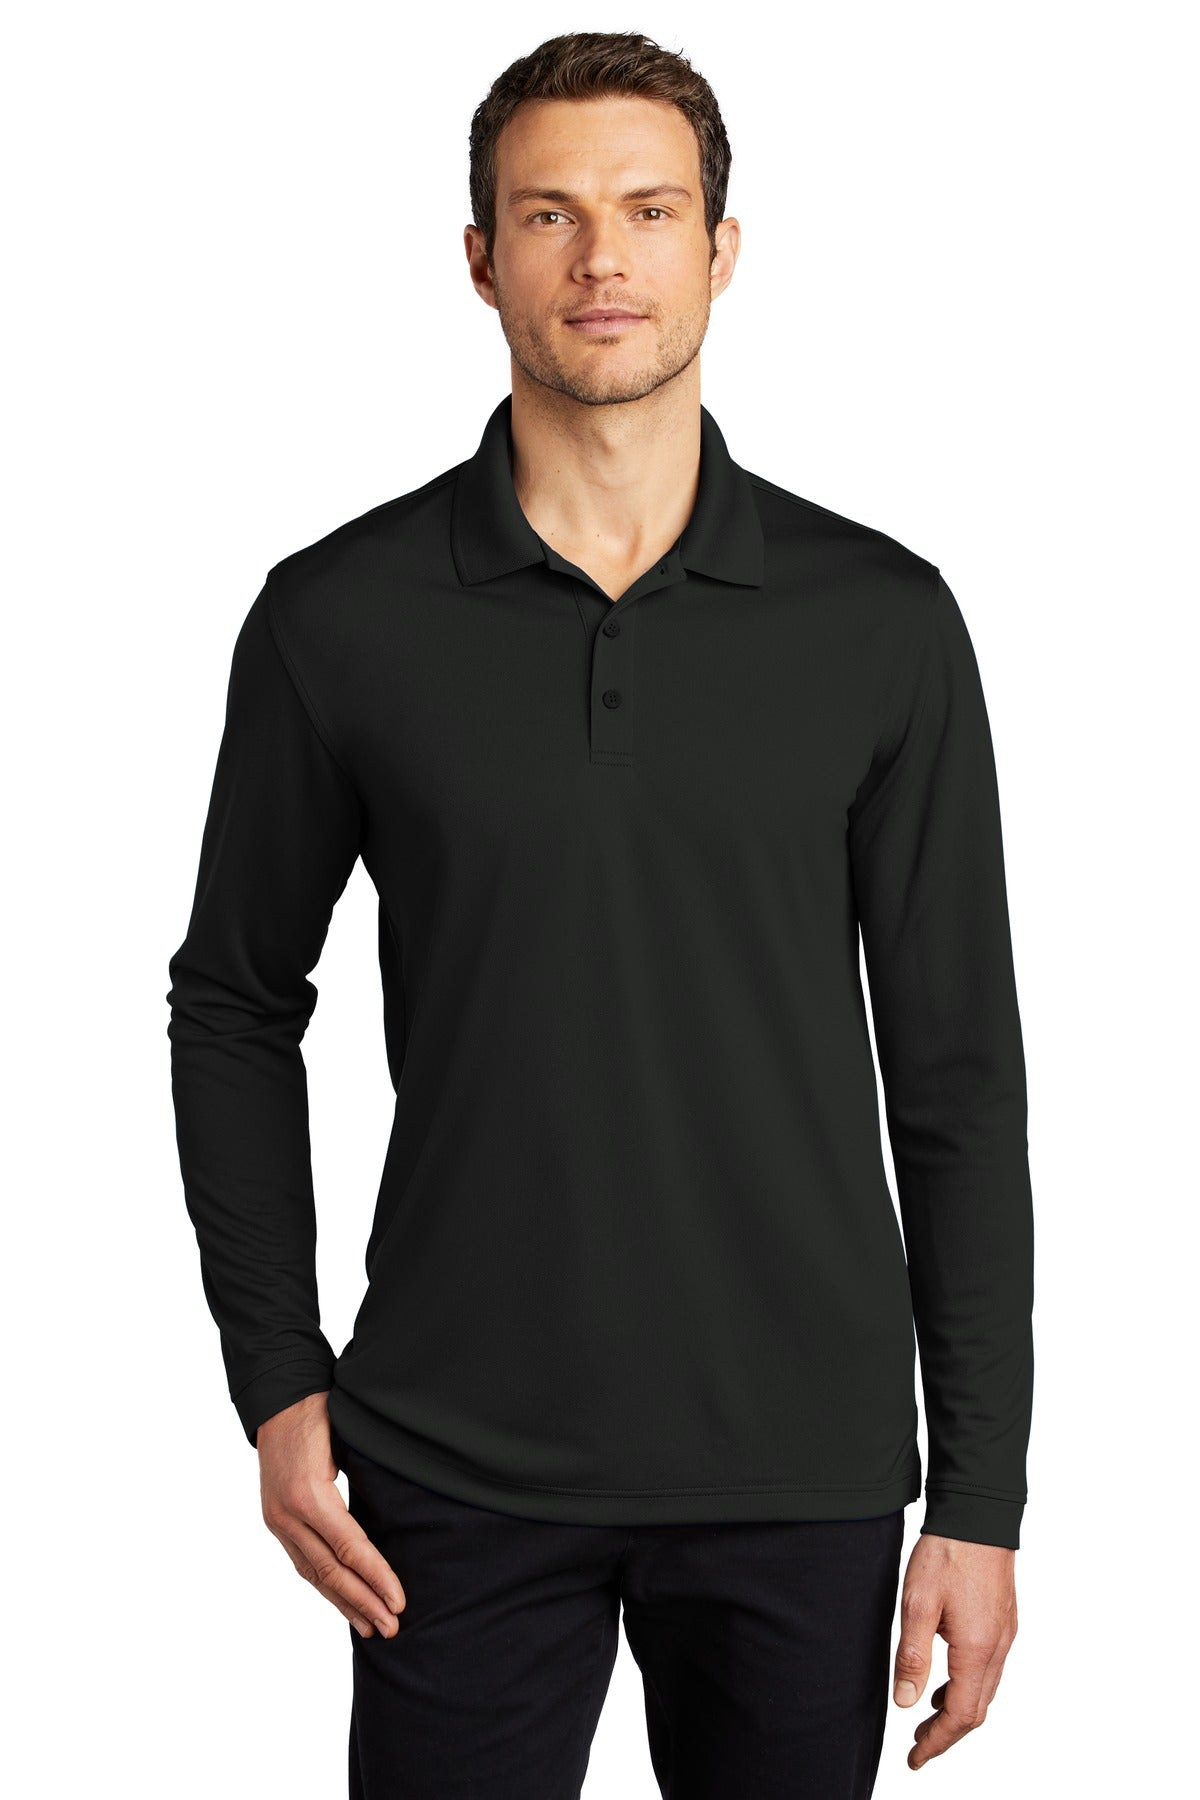 Steel Grey Port Authority Heavyweight Cotton Pique Polo.